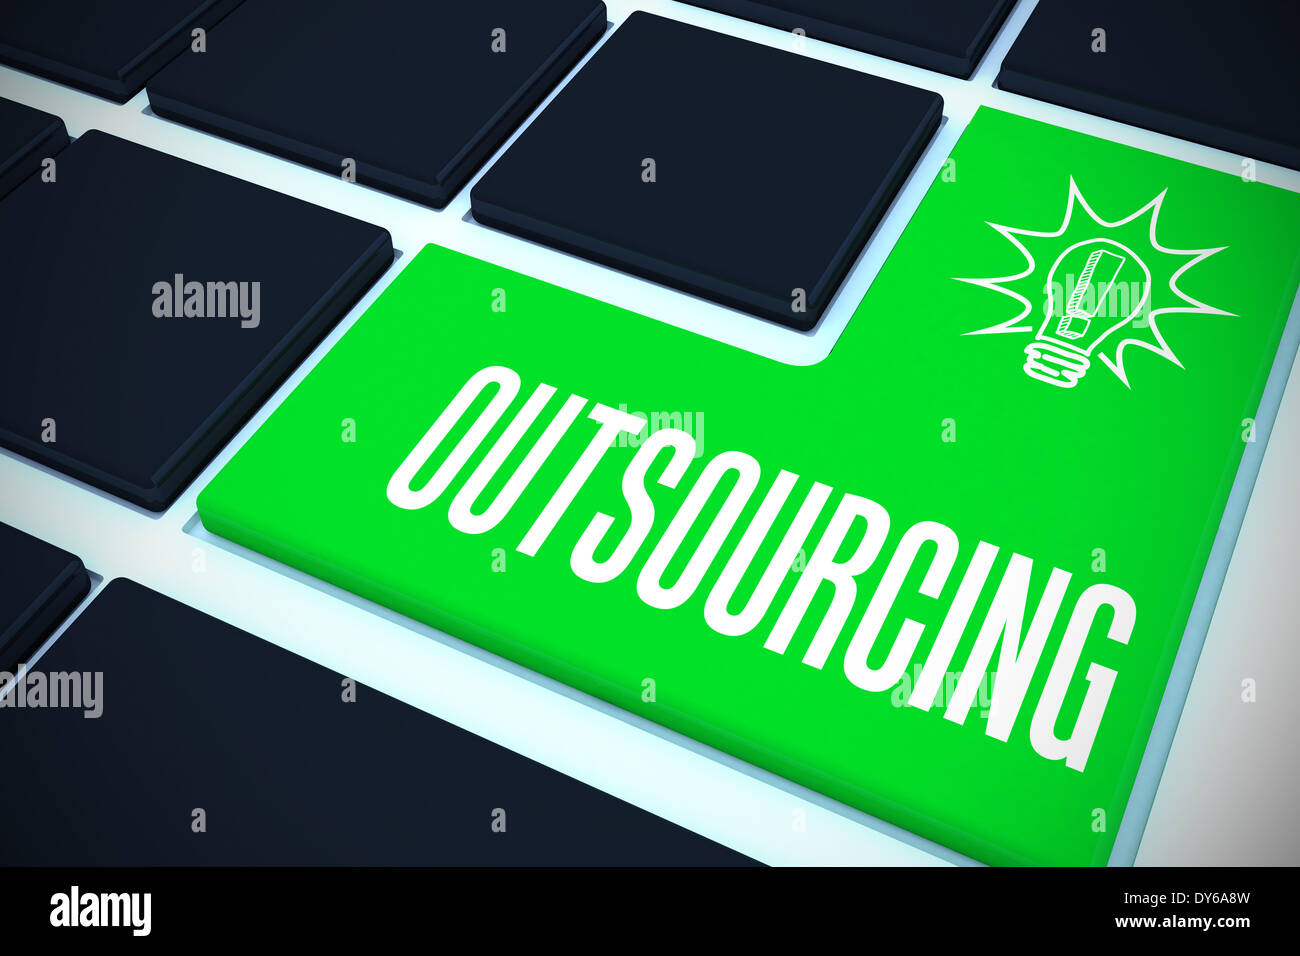 Outsourcing on black keyboard with green key - Stock Image